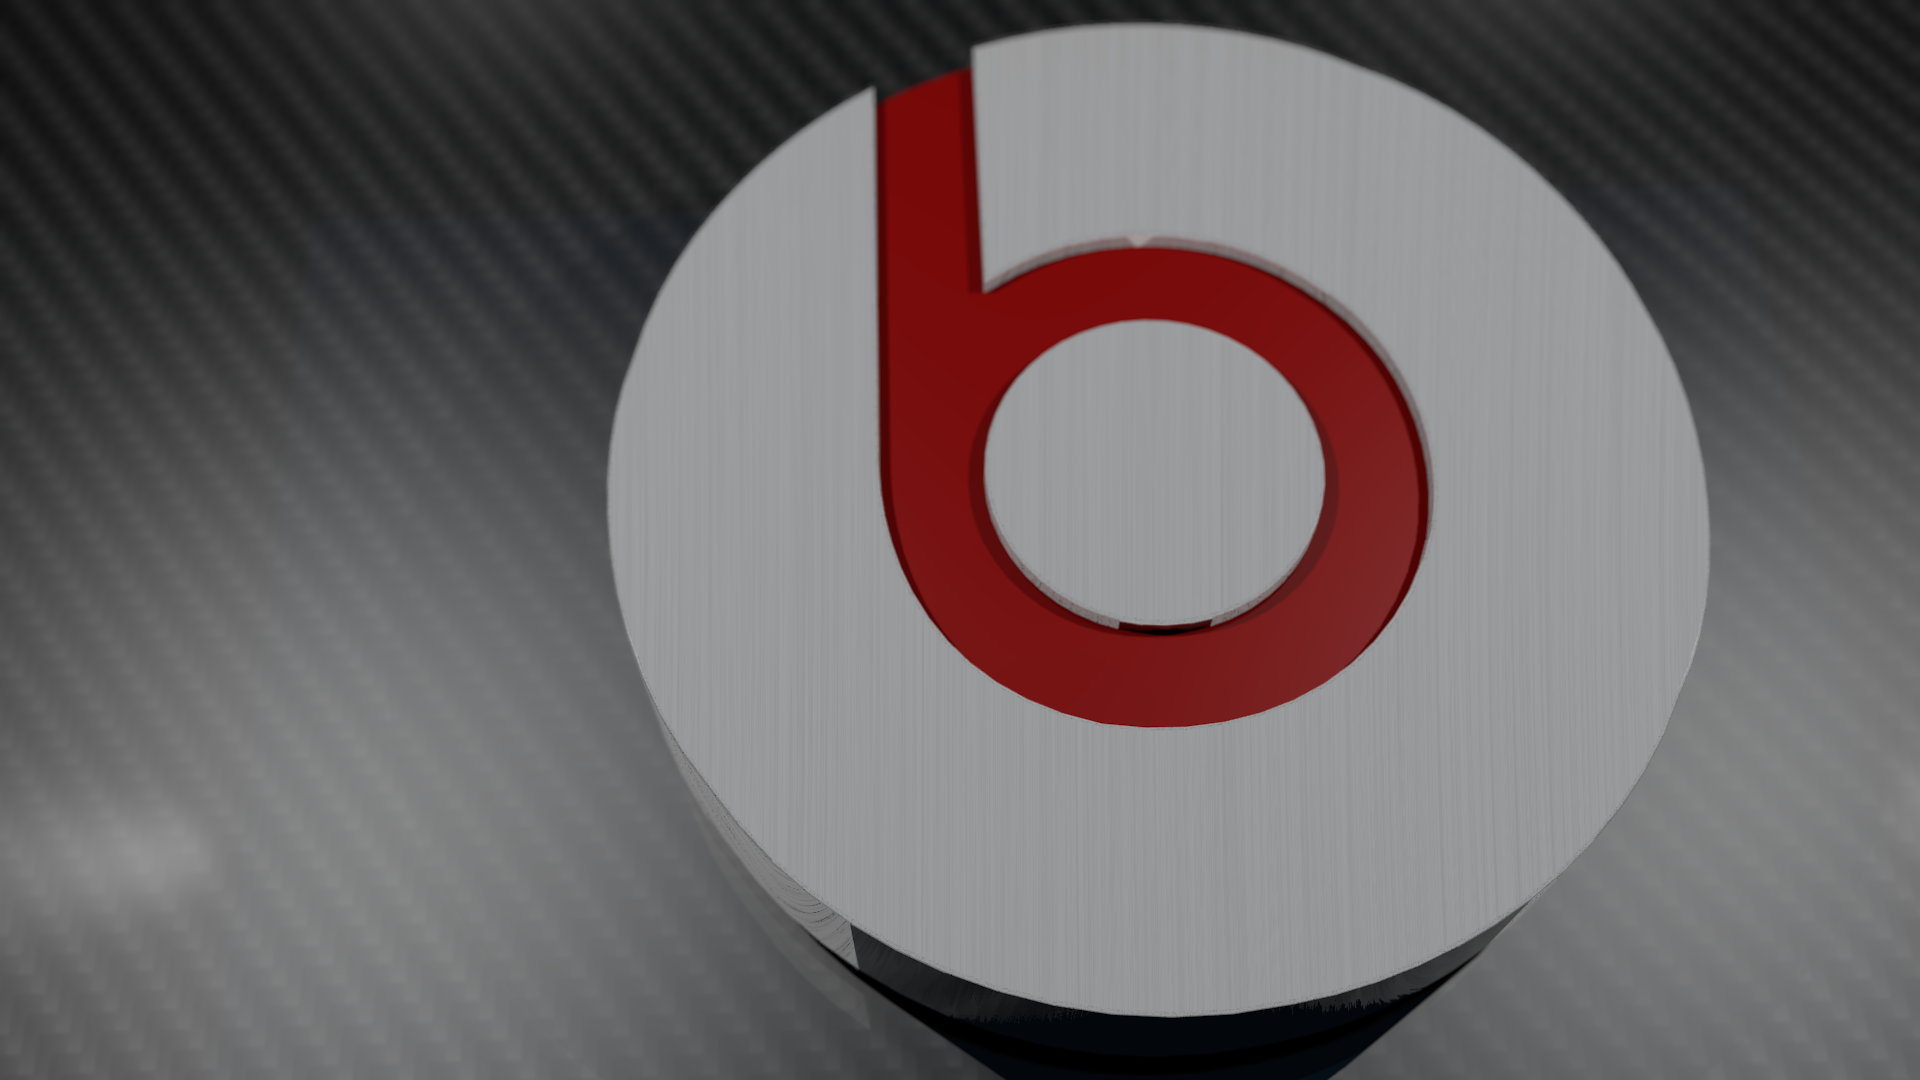 Monsters Audio Wallpaper 1920x1080 Monsters, Audio, Dr, Dre, Blender, Carbon, Fiber, Beats